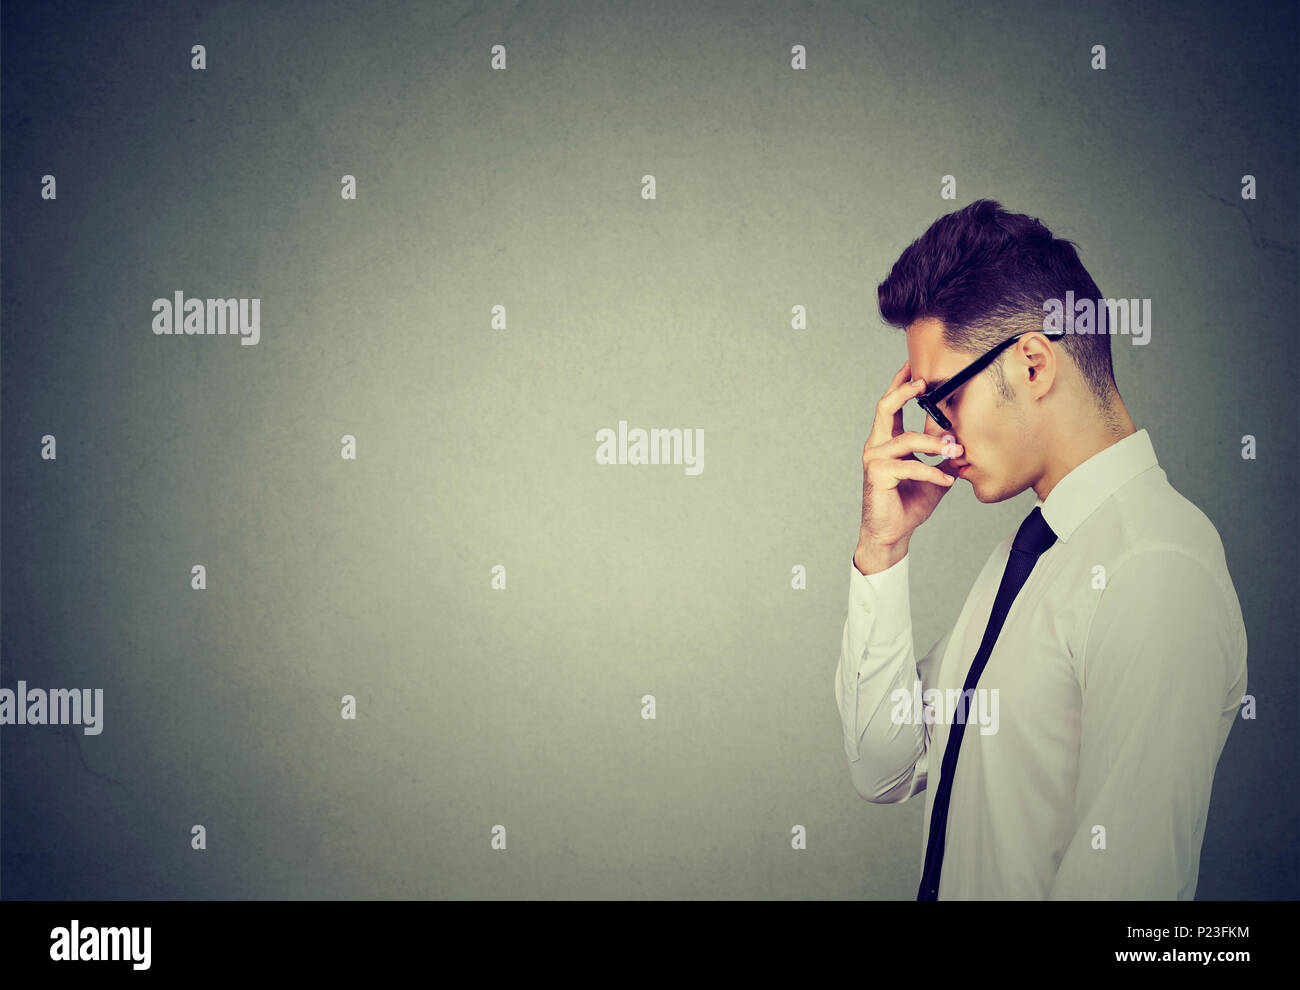 Serious business man thinking very hard - Stock Image